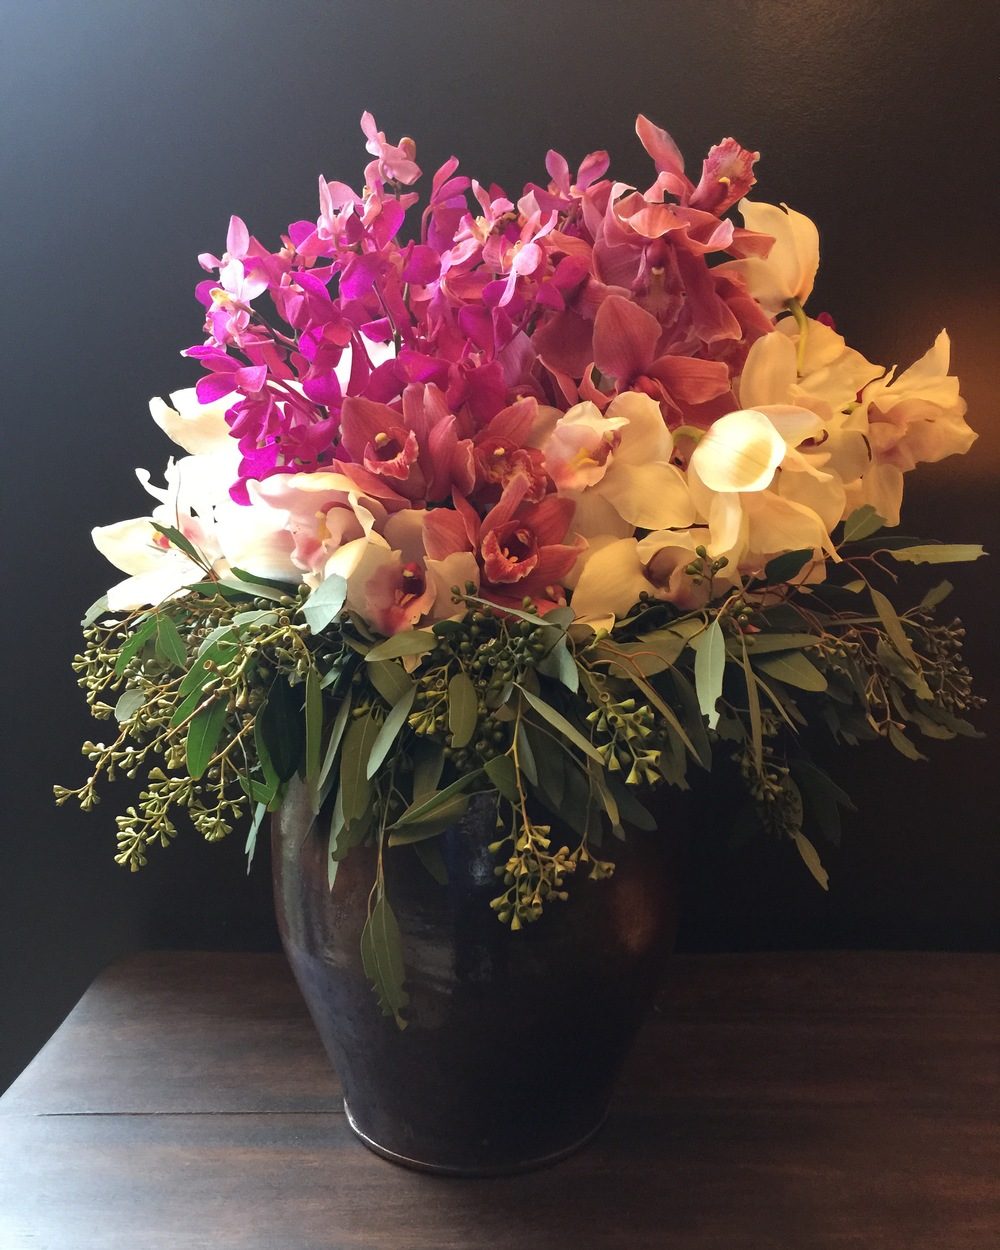 I've also done a post on all the fabulous flowers and books styled in the  Hotel Emma . You can check those stunning arrangements out  HERE .